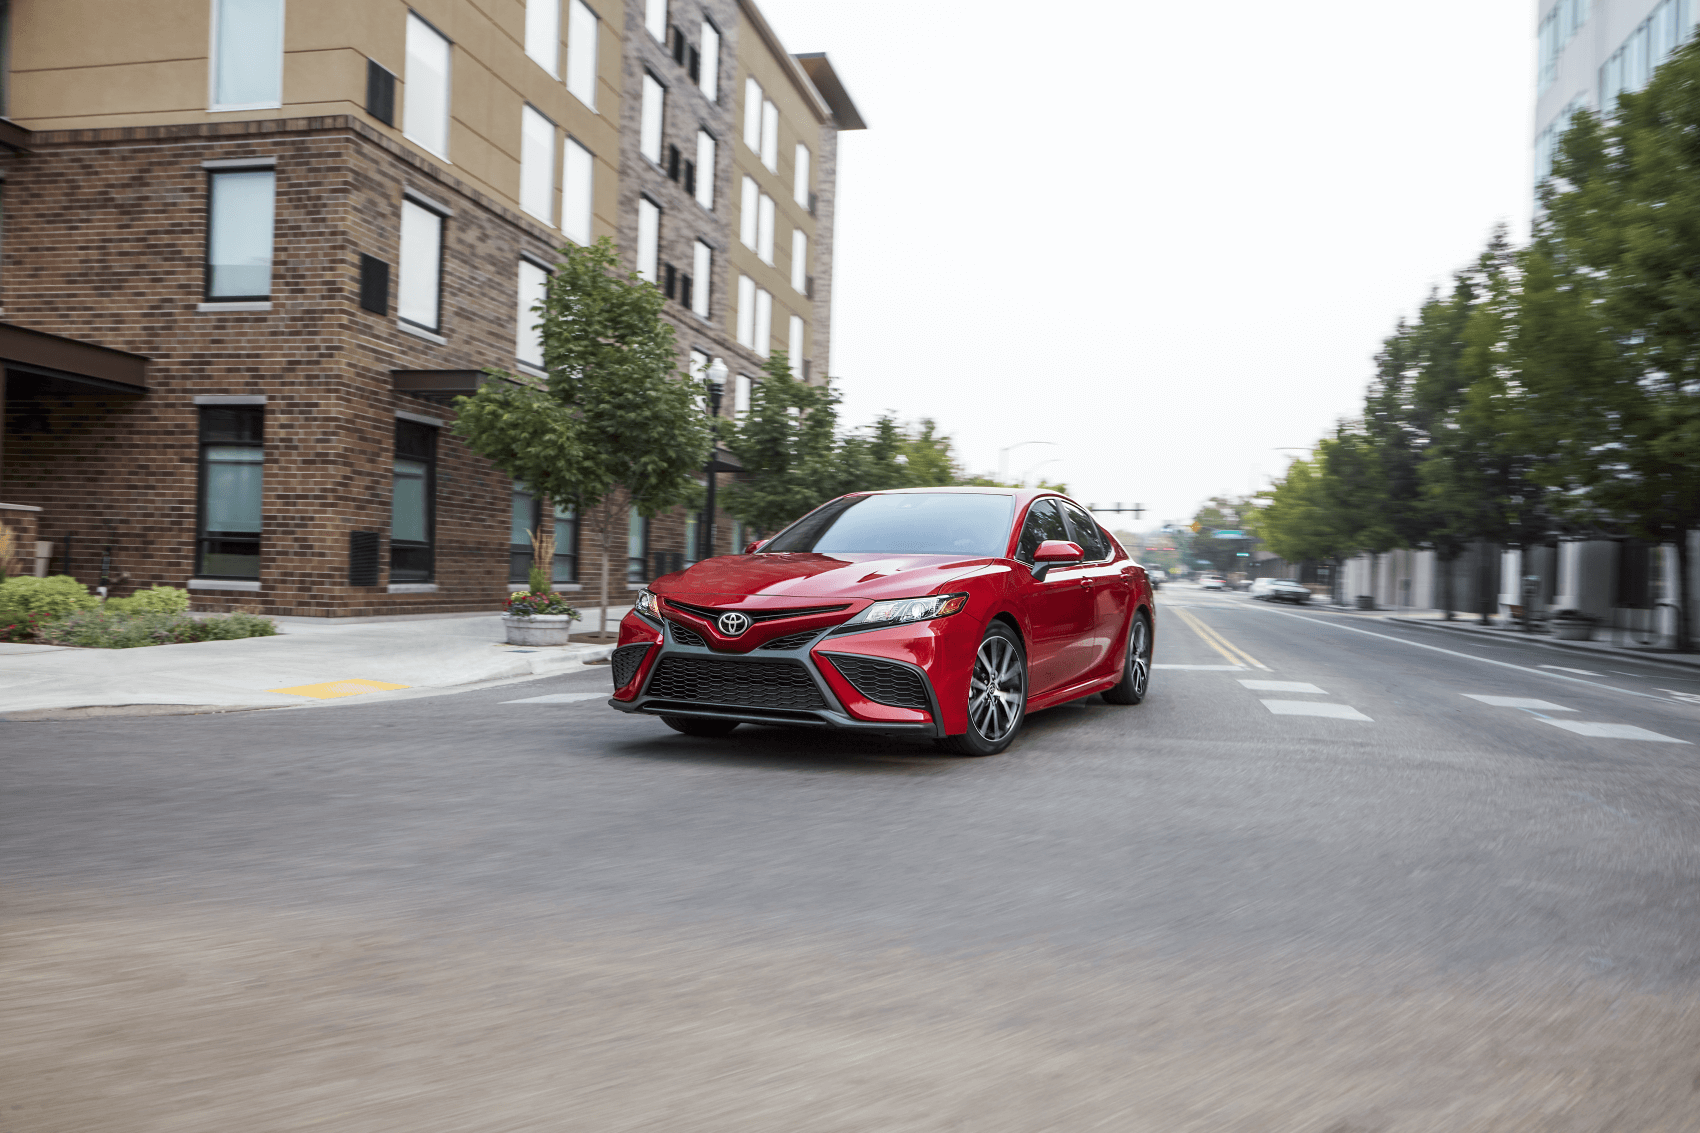 2021 Toyota Camry Red City